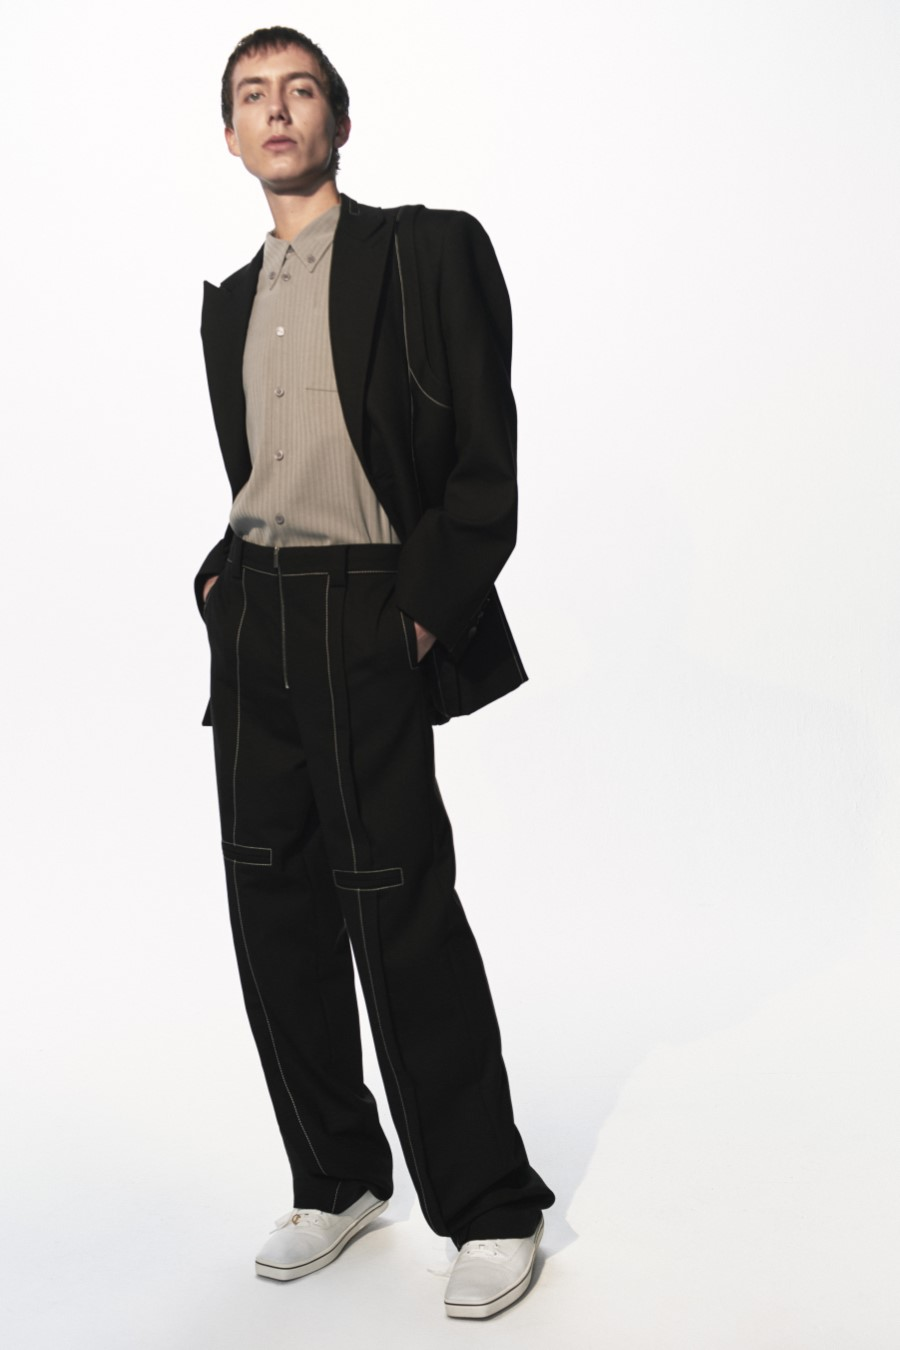 WE11DONE Women's Spring-Summer 2021 and Men's Pre-Fall 2021 Lookbook